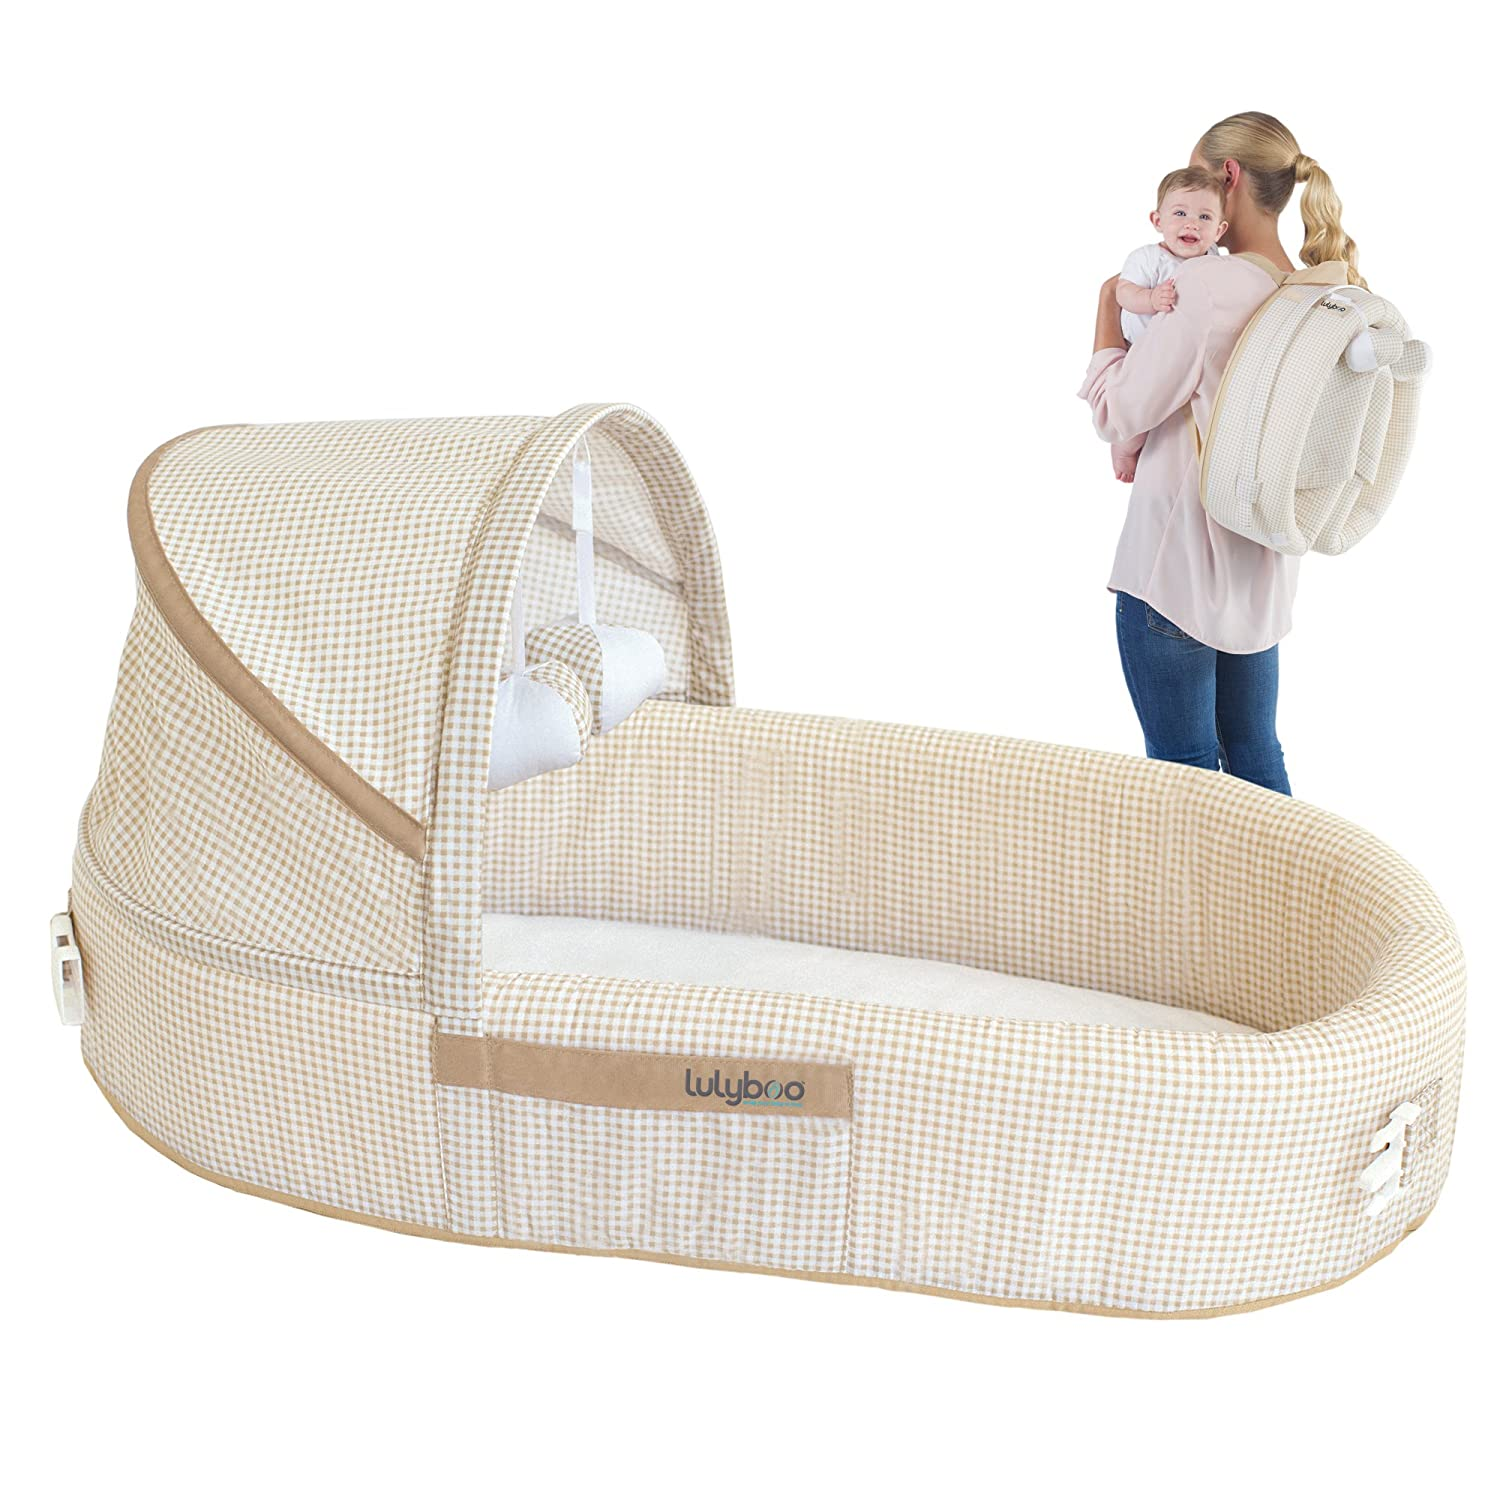 Amazon.com : Lulyboo Baby Lounge To Go   Portable Infant Bed Folds Into  Backpack   With Activity Bar And Rattle Toys (Beige) : Infant And Toddler  Travel ...